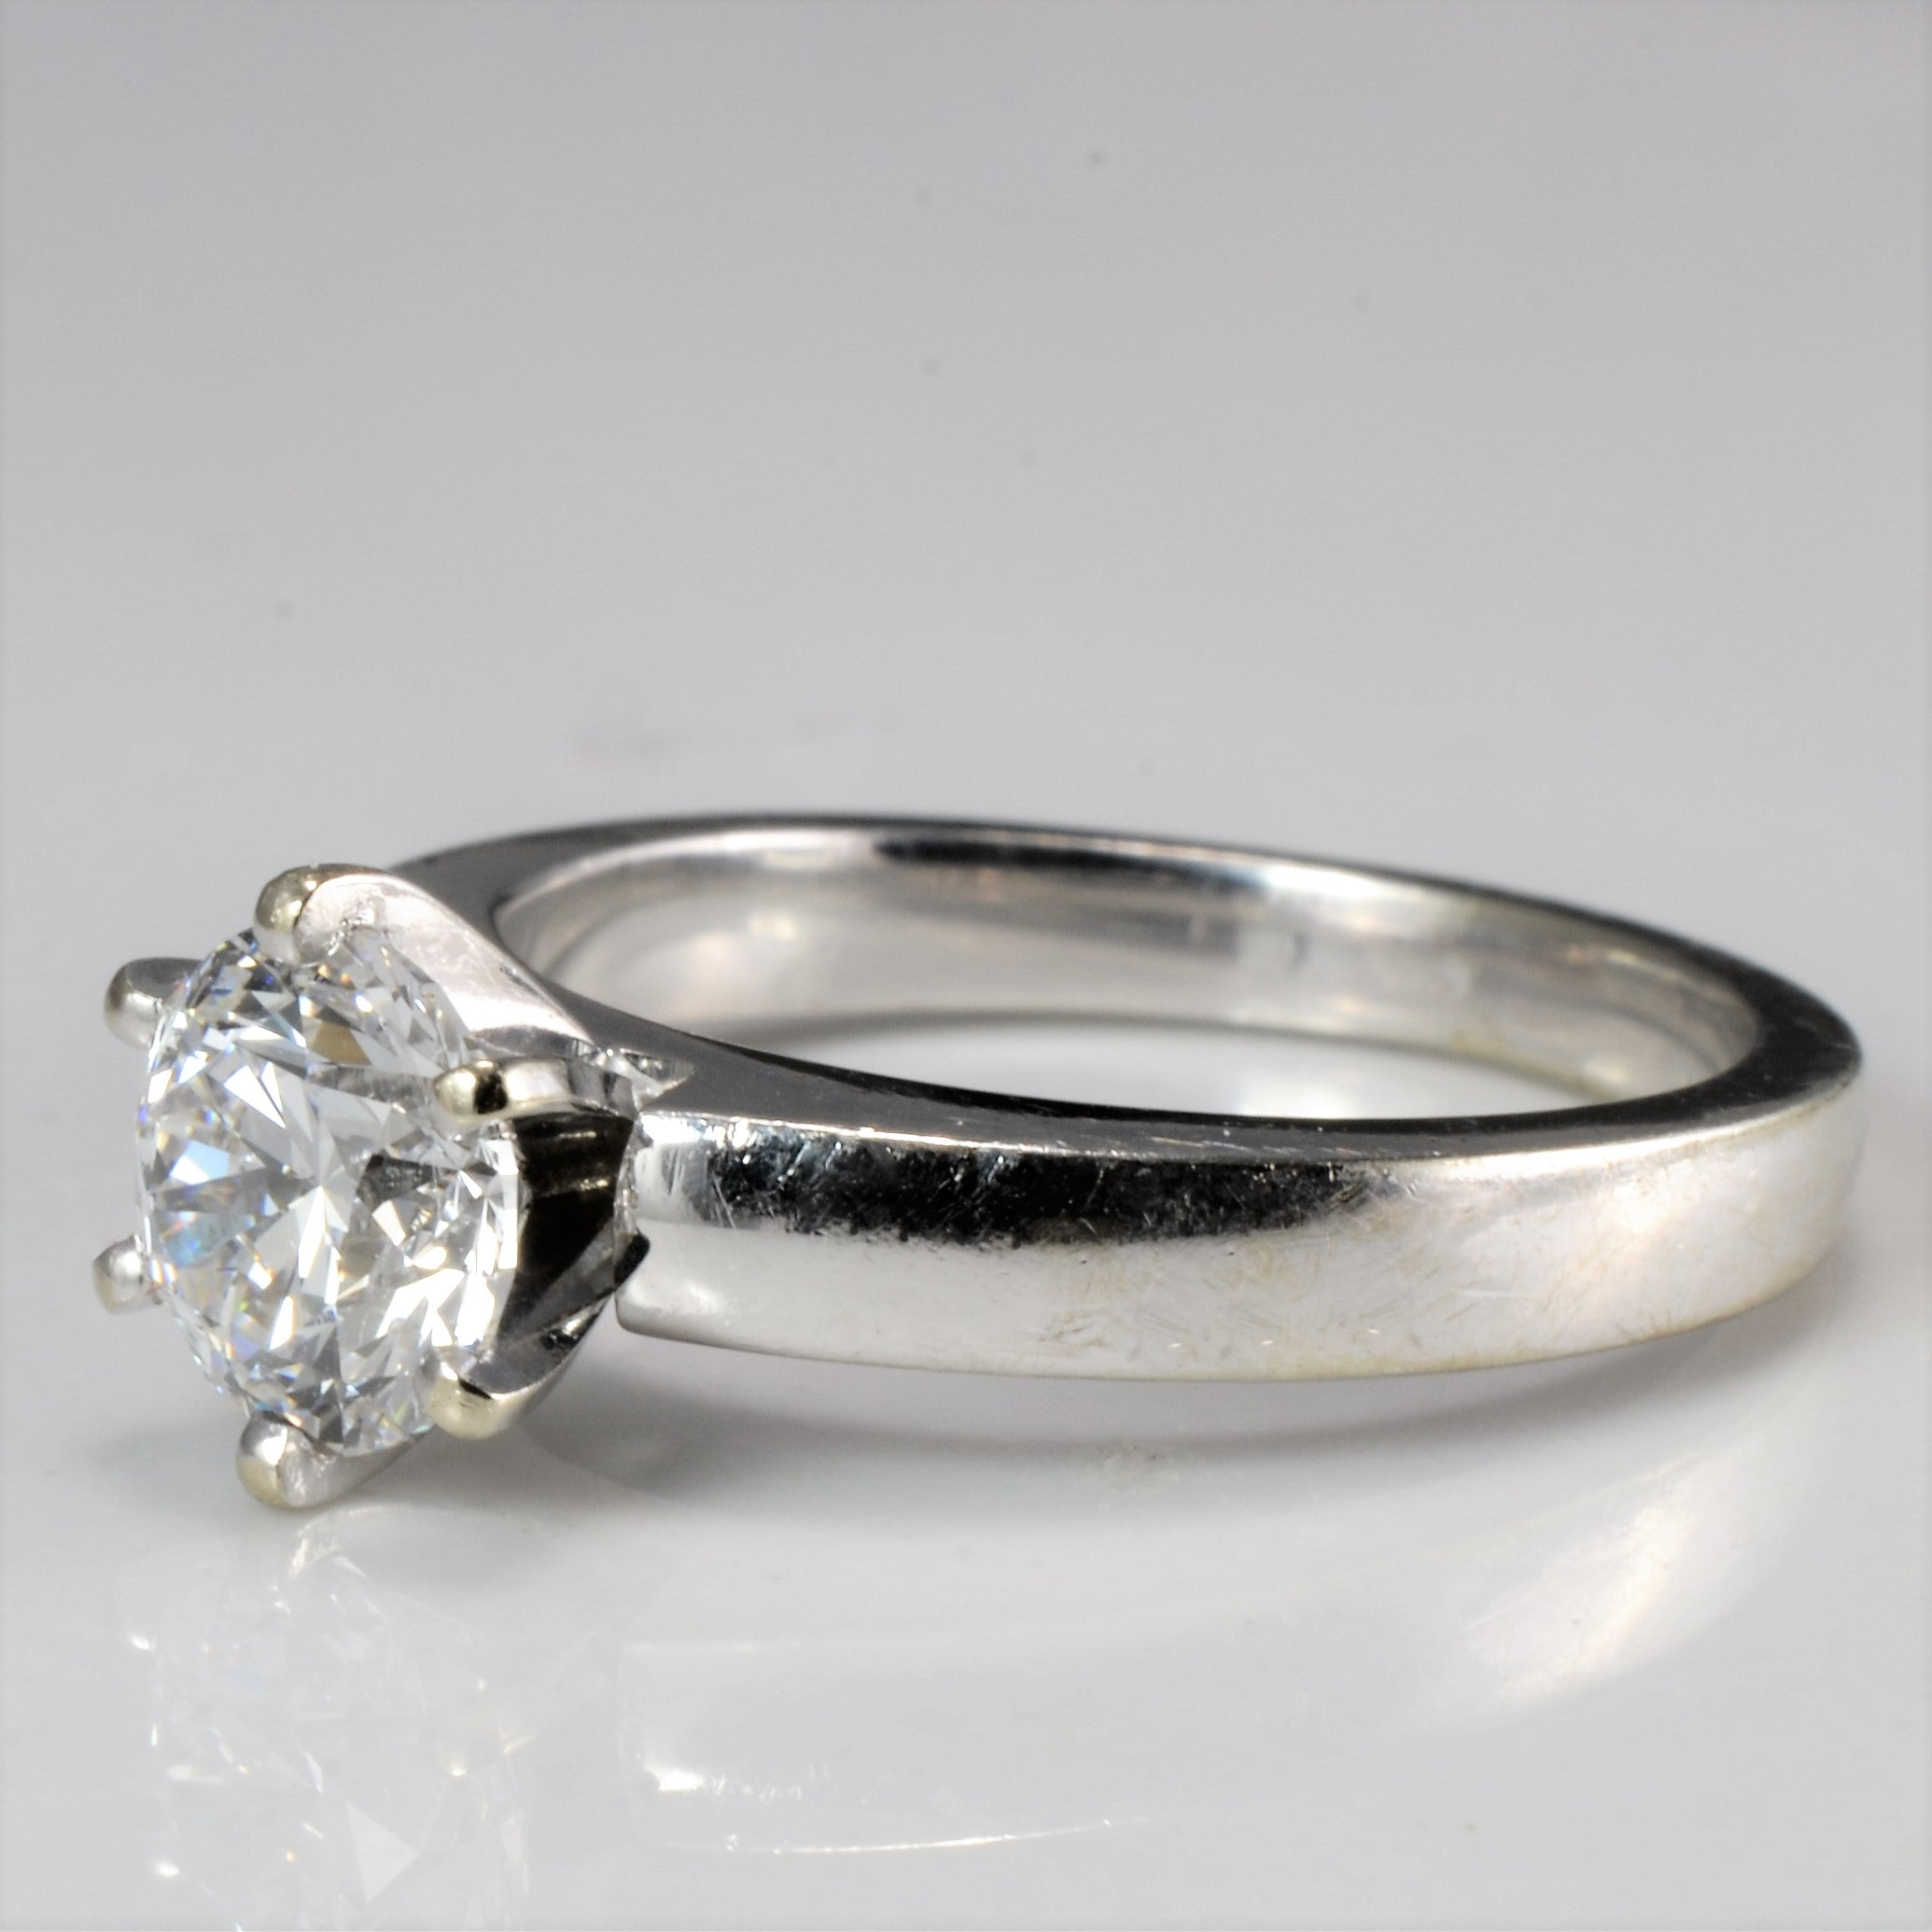 Six Prong Solitaire Diamond Engagement Ring | 1.01 ct, SZ 5 |